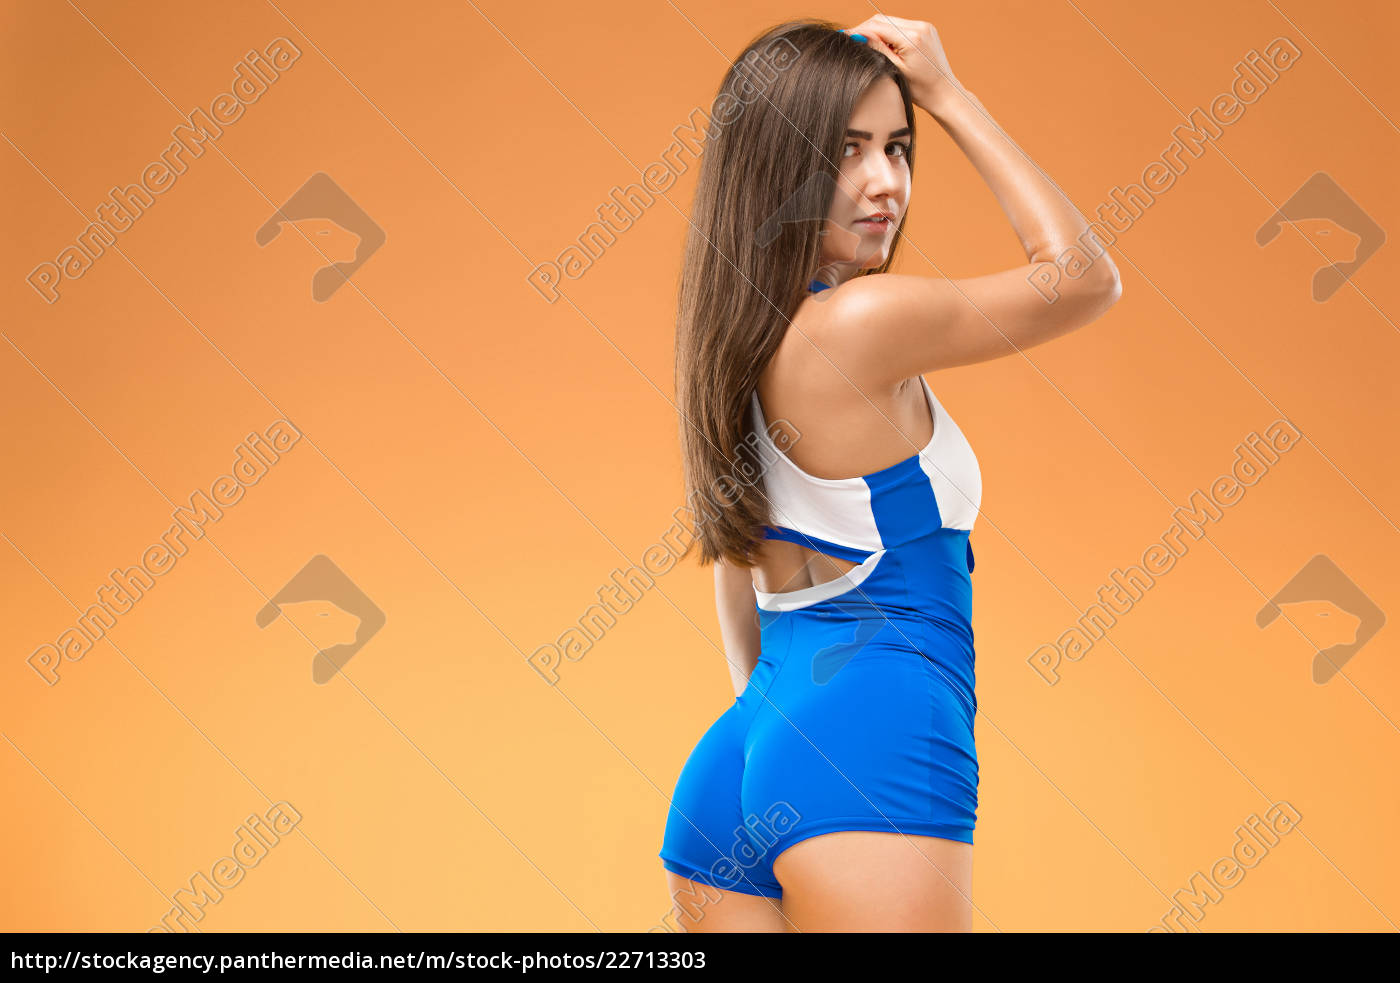 muscular, young, woman, athlete, posing, at - 22713303